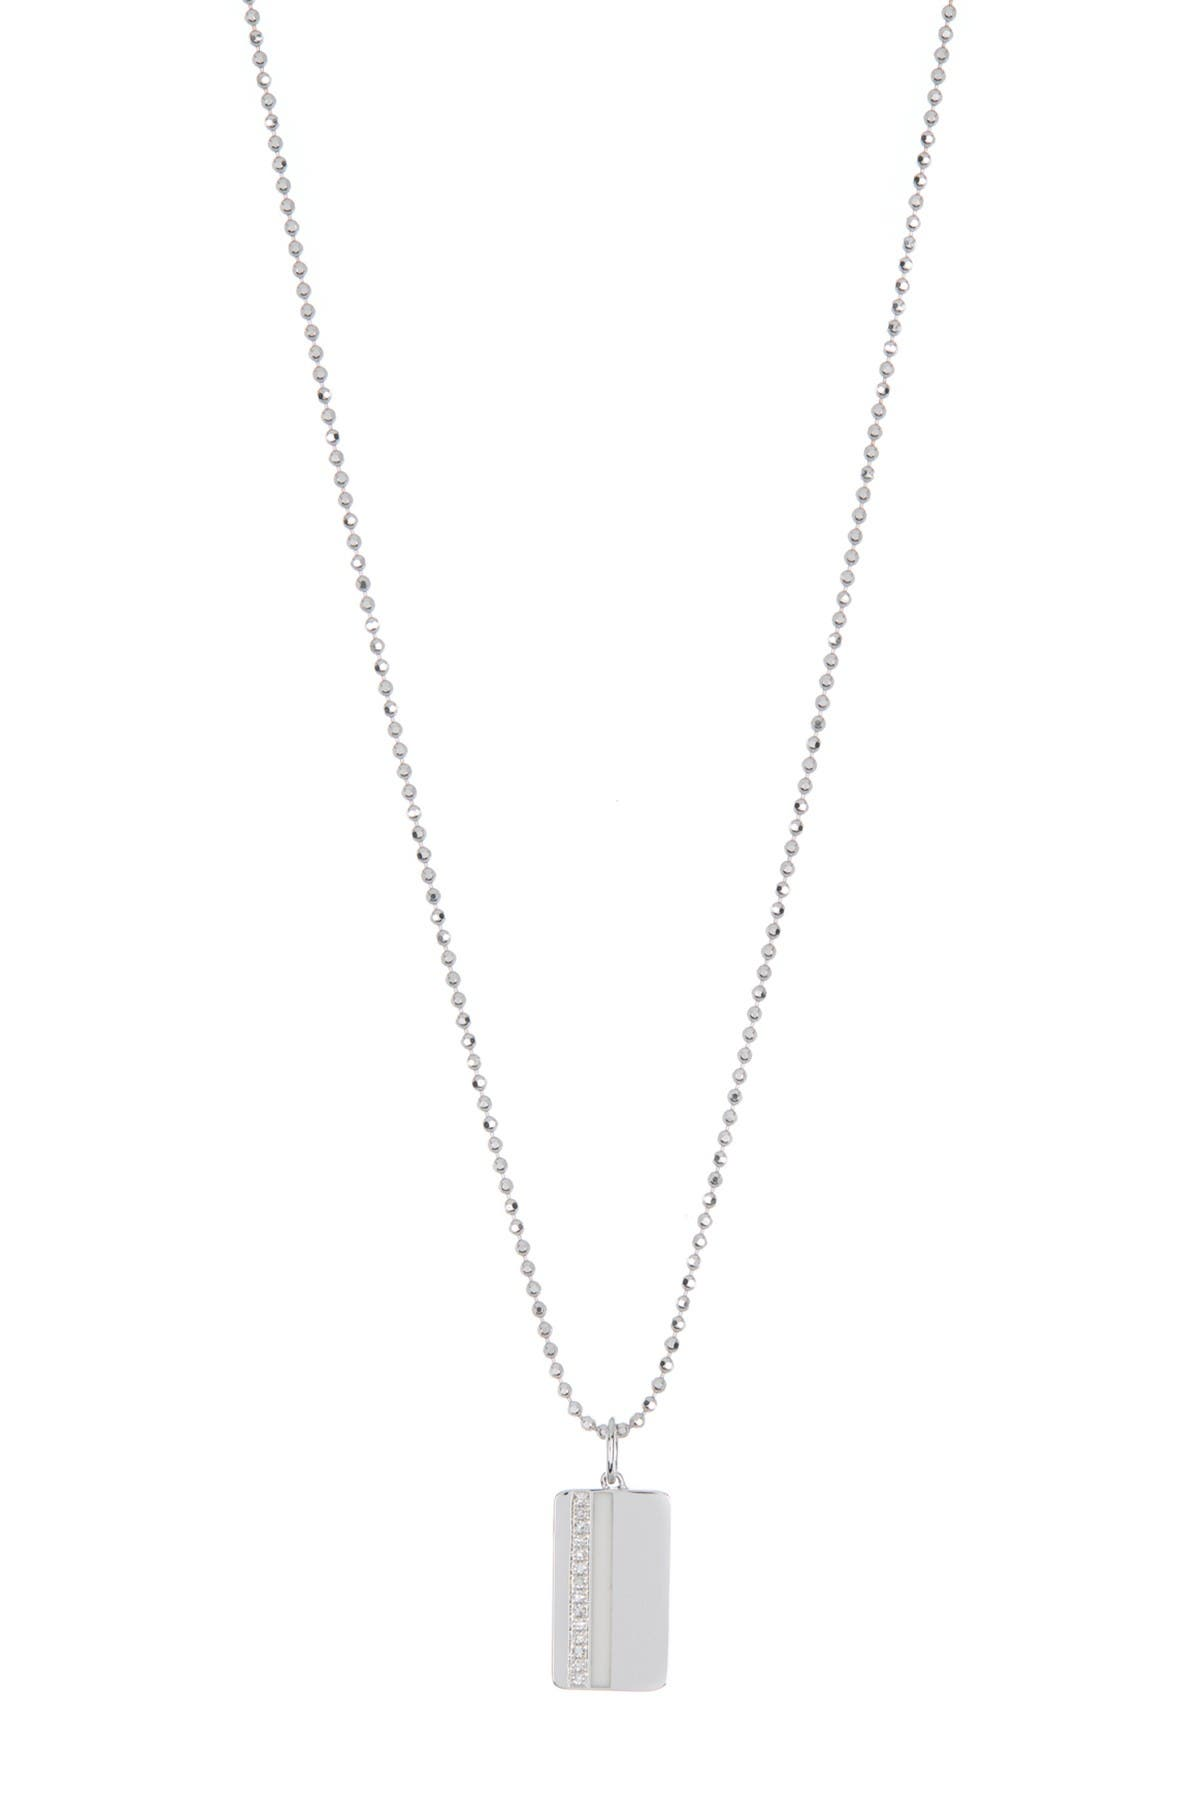 Image of EF Collection 14K White Gold Diamond & Enamel ID Tag Necklace - 0.04 ctw